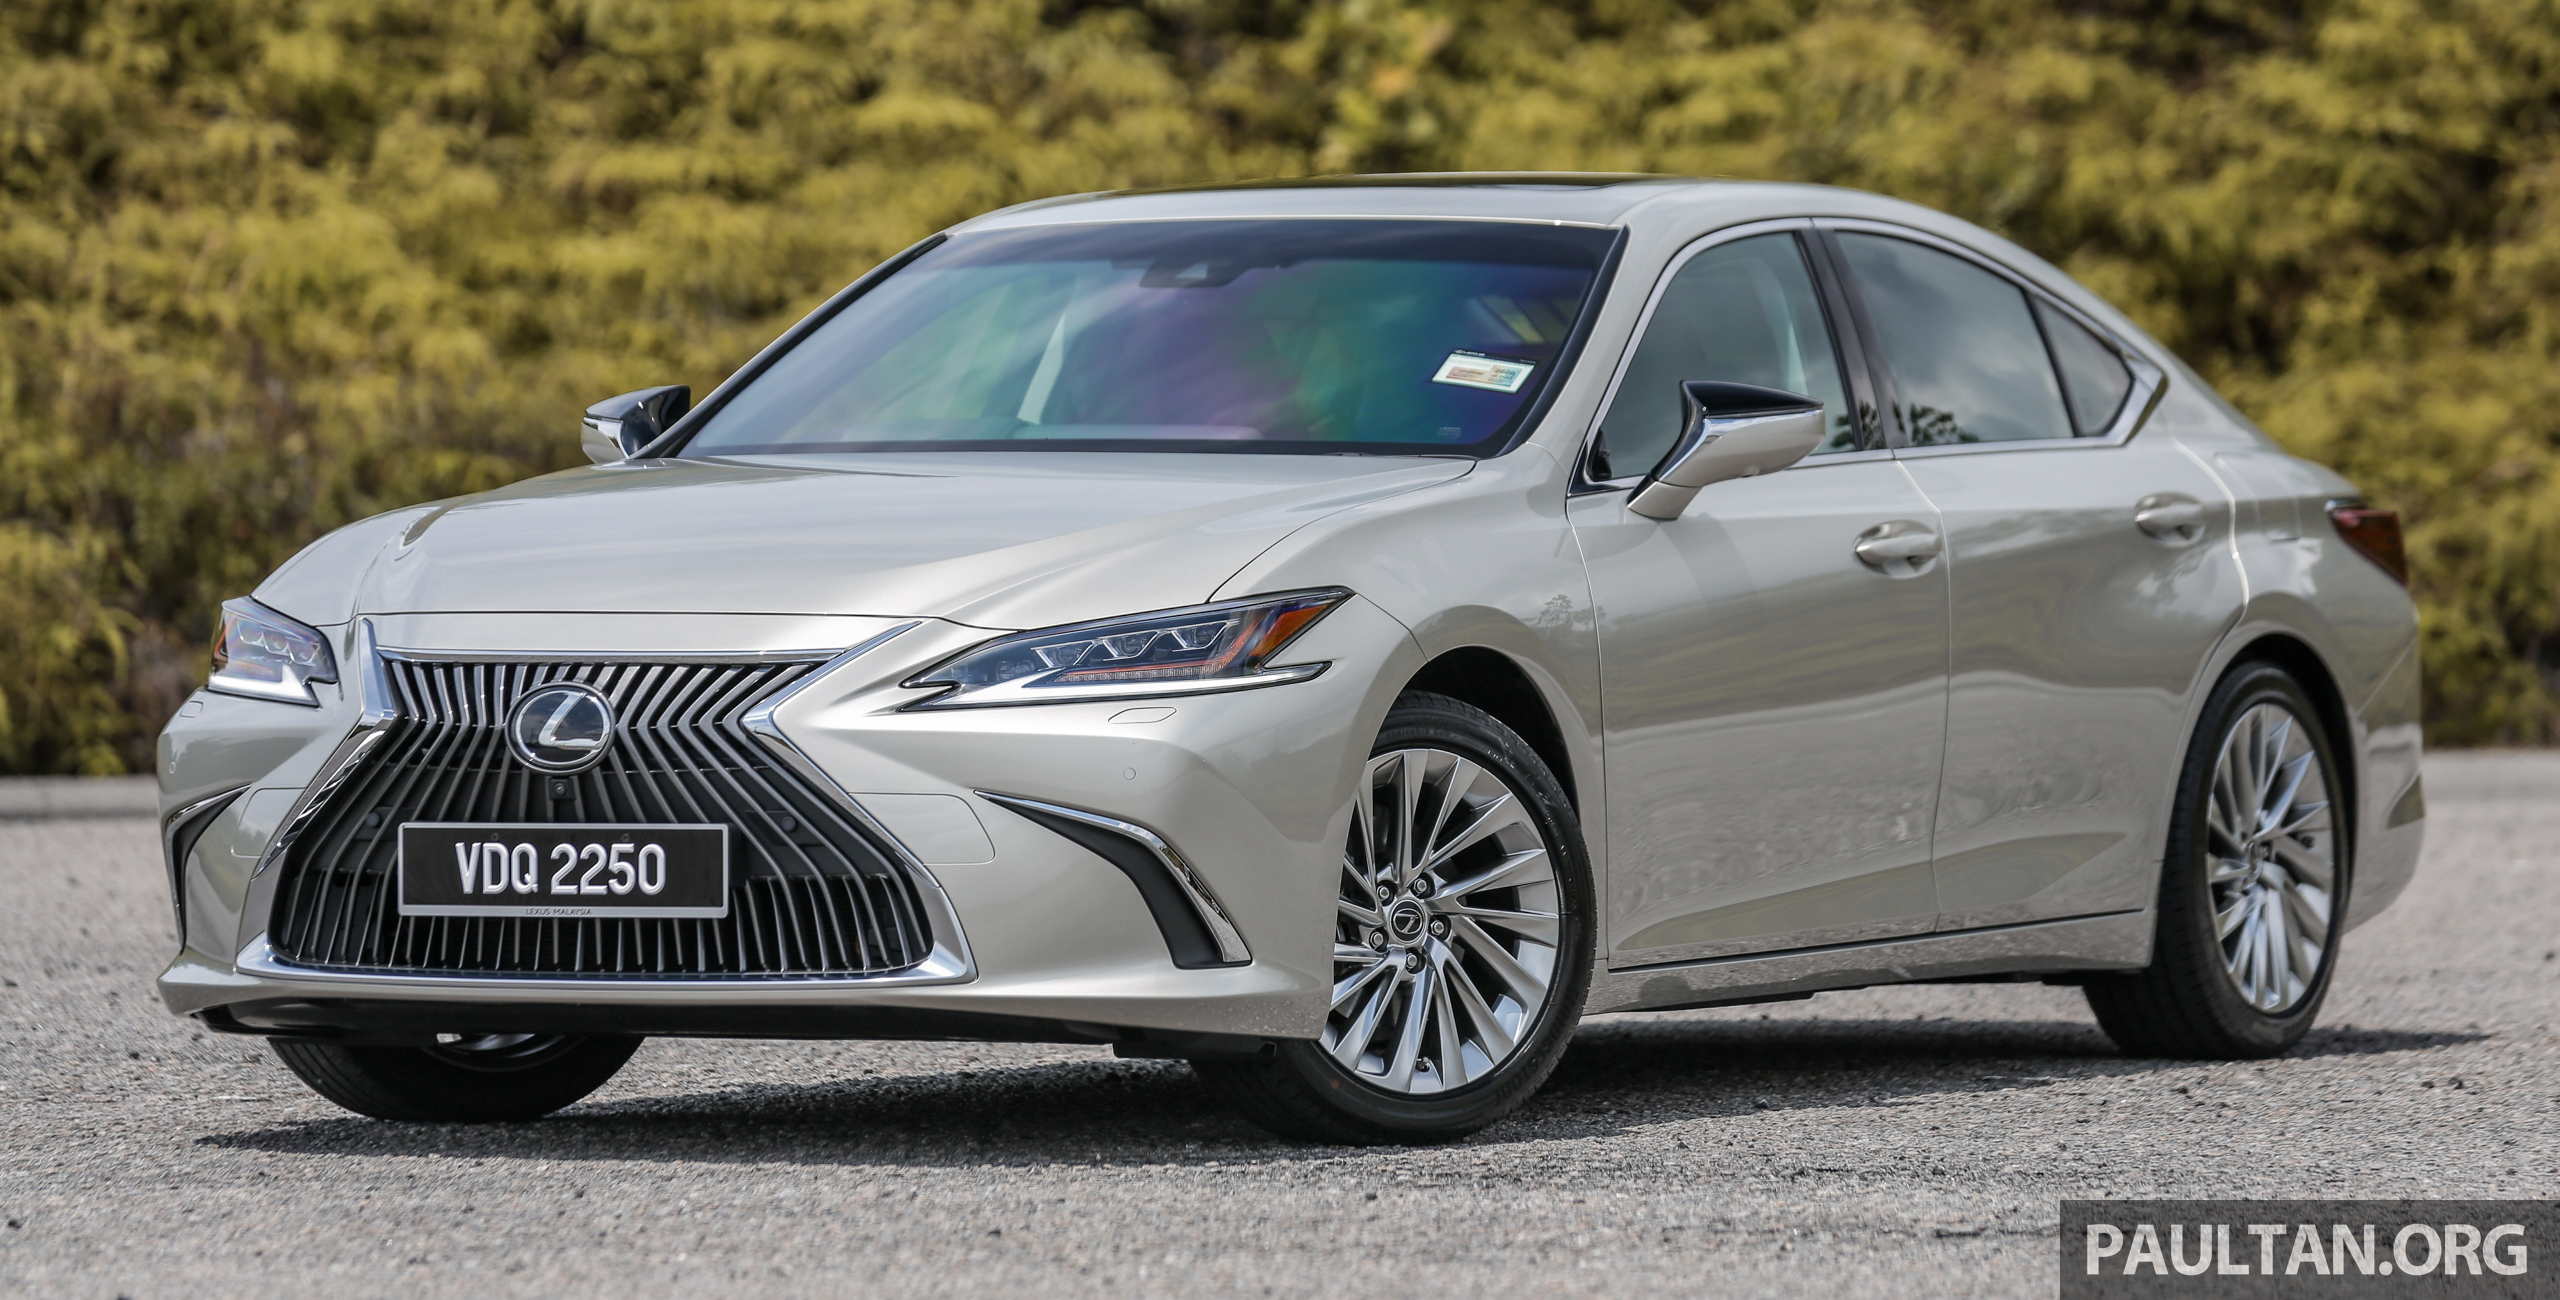 2020 Sst Exemption Lexus Malaysia Reveals New Price List Cbu Cars Up To Rm47k Less Till Jan 31 2021 Paultan Org